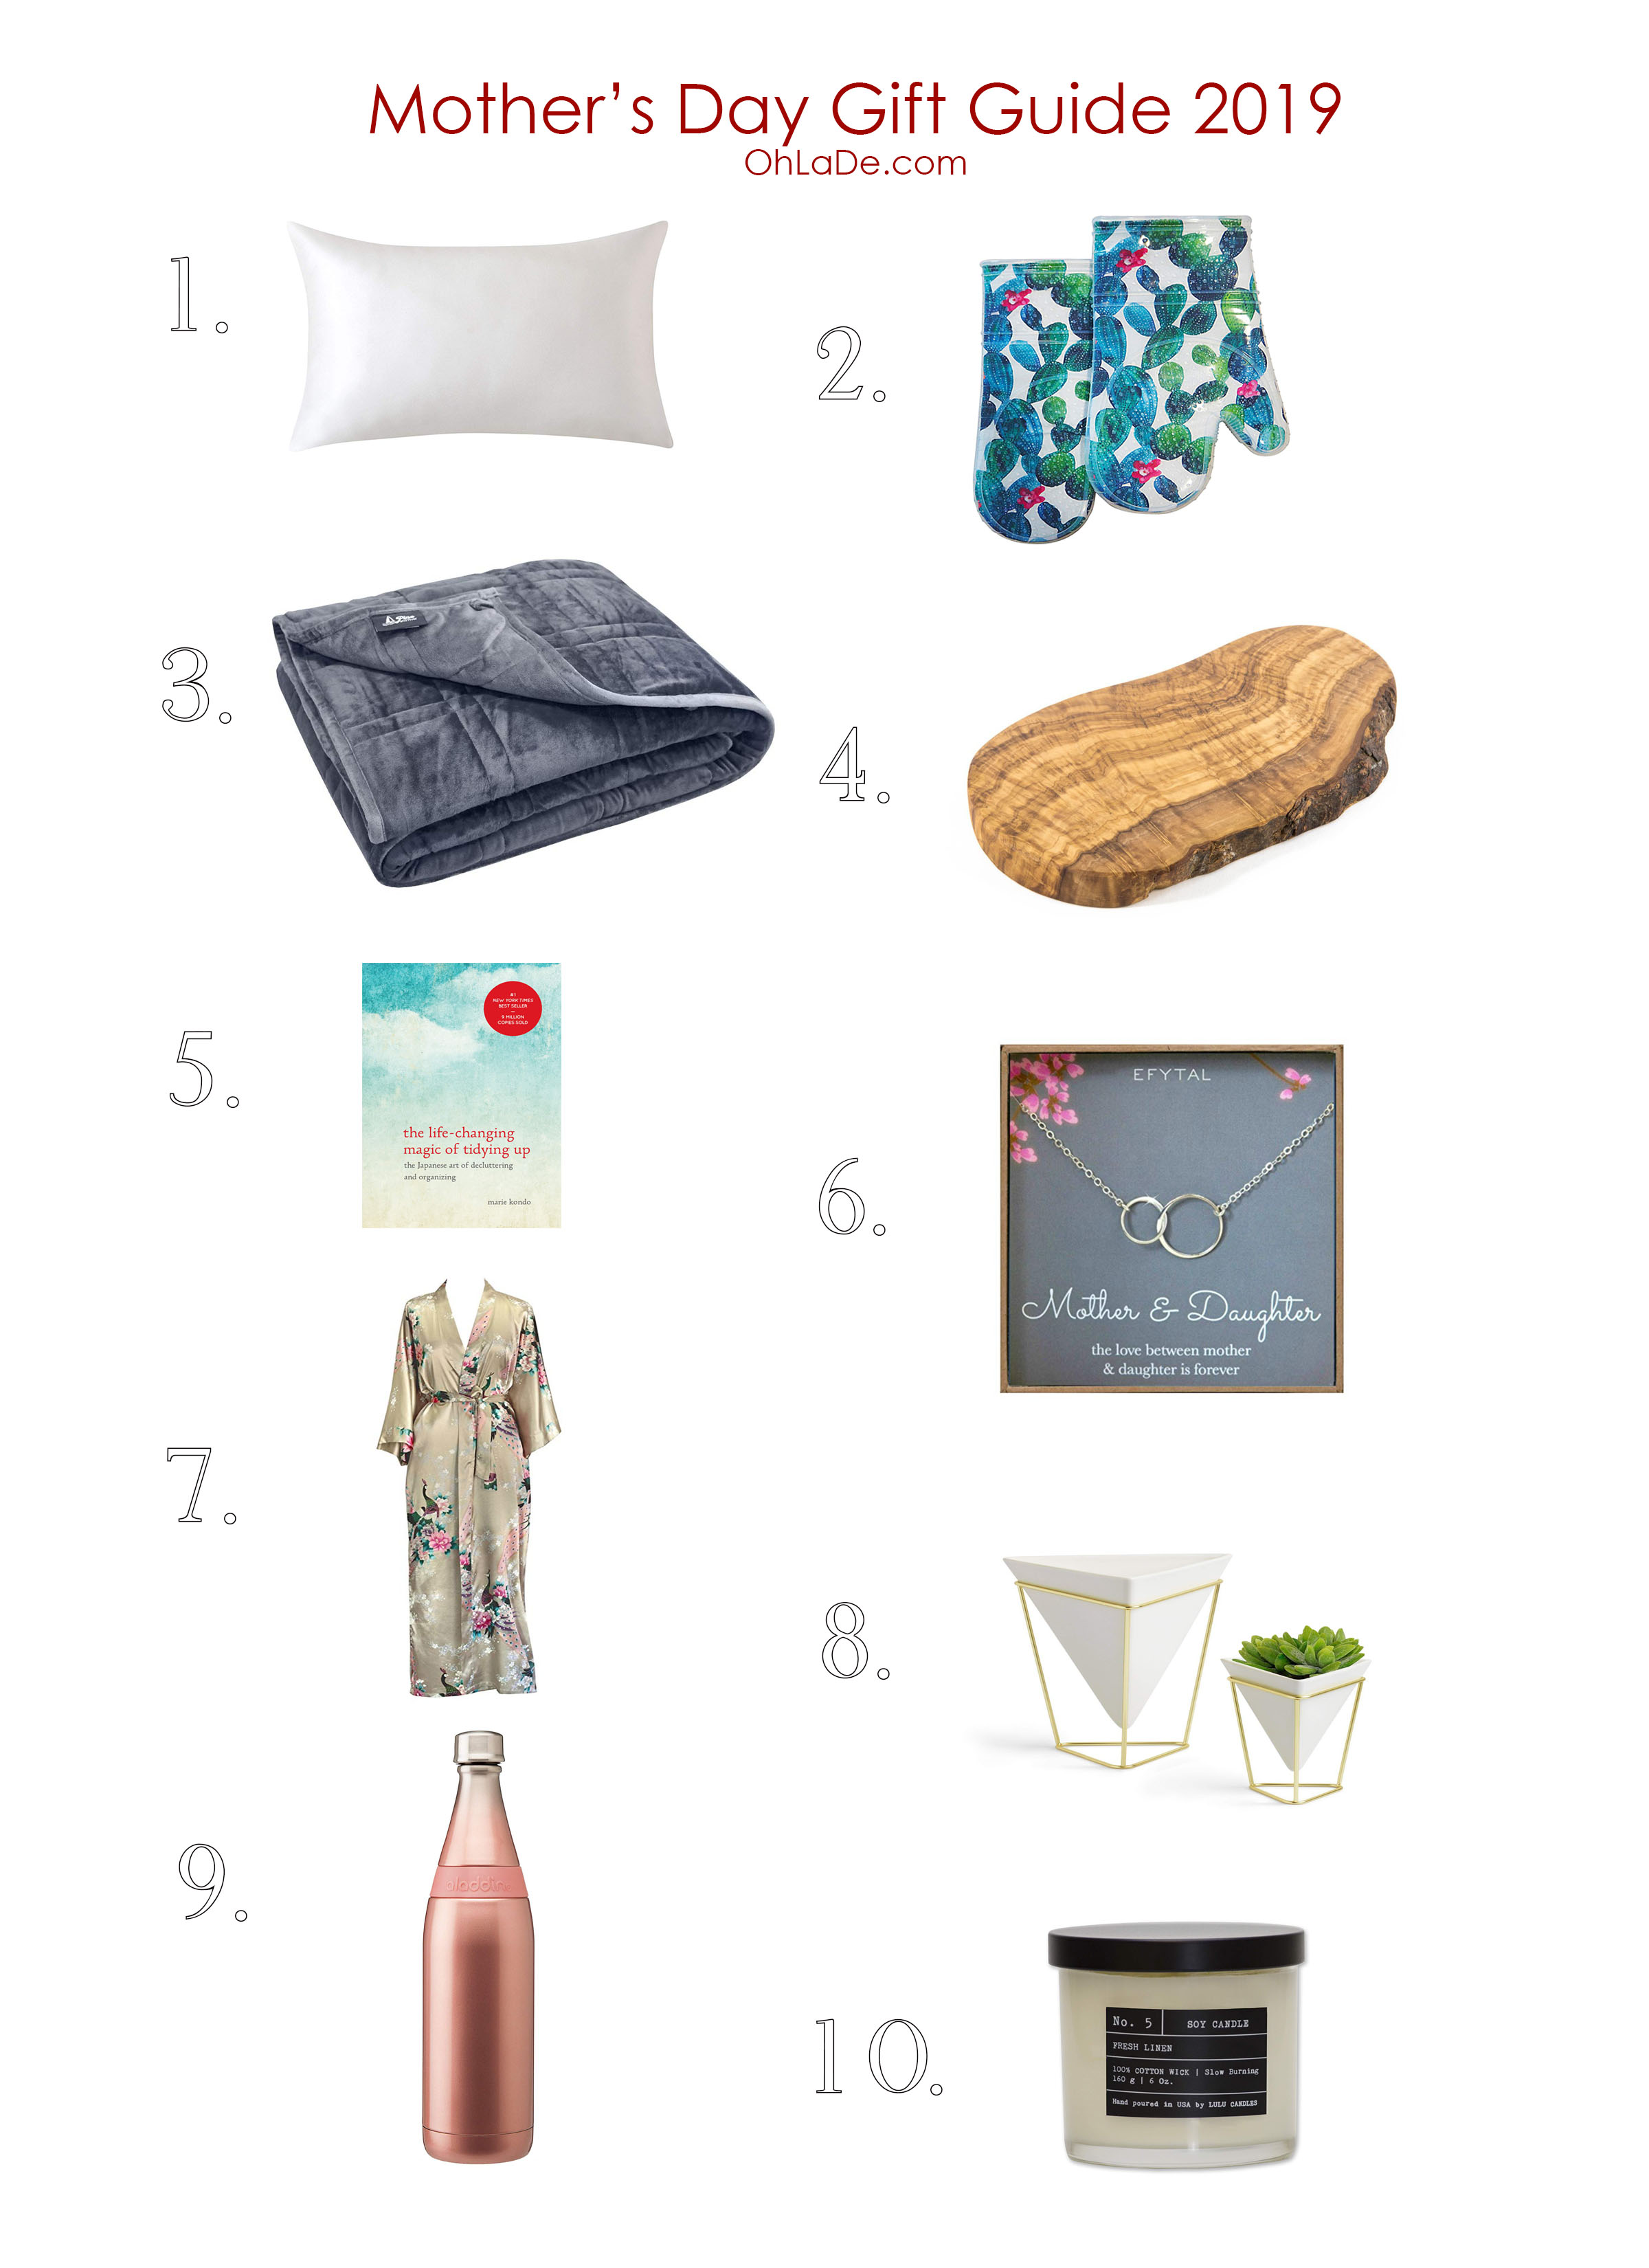 Mother's Day Gift Guide 2019- Ohlade.com